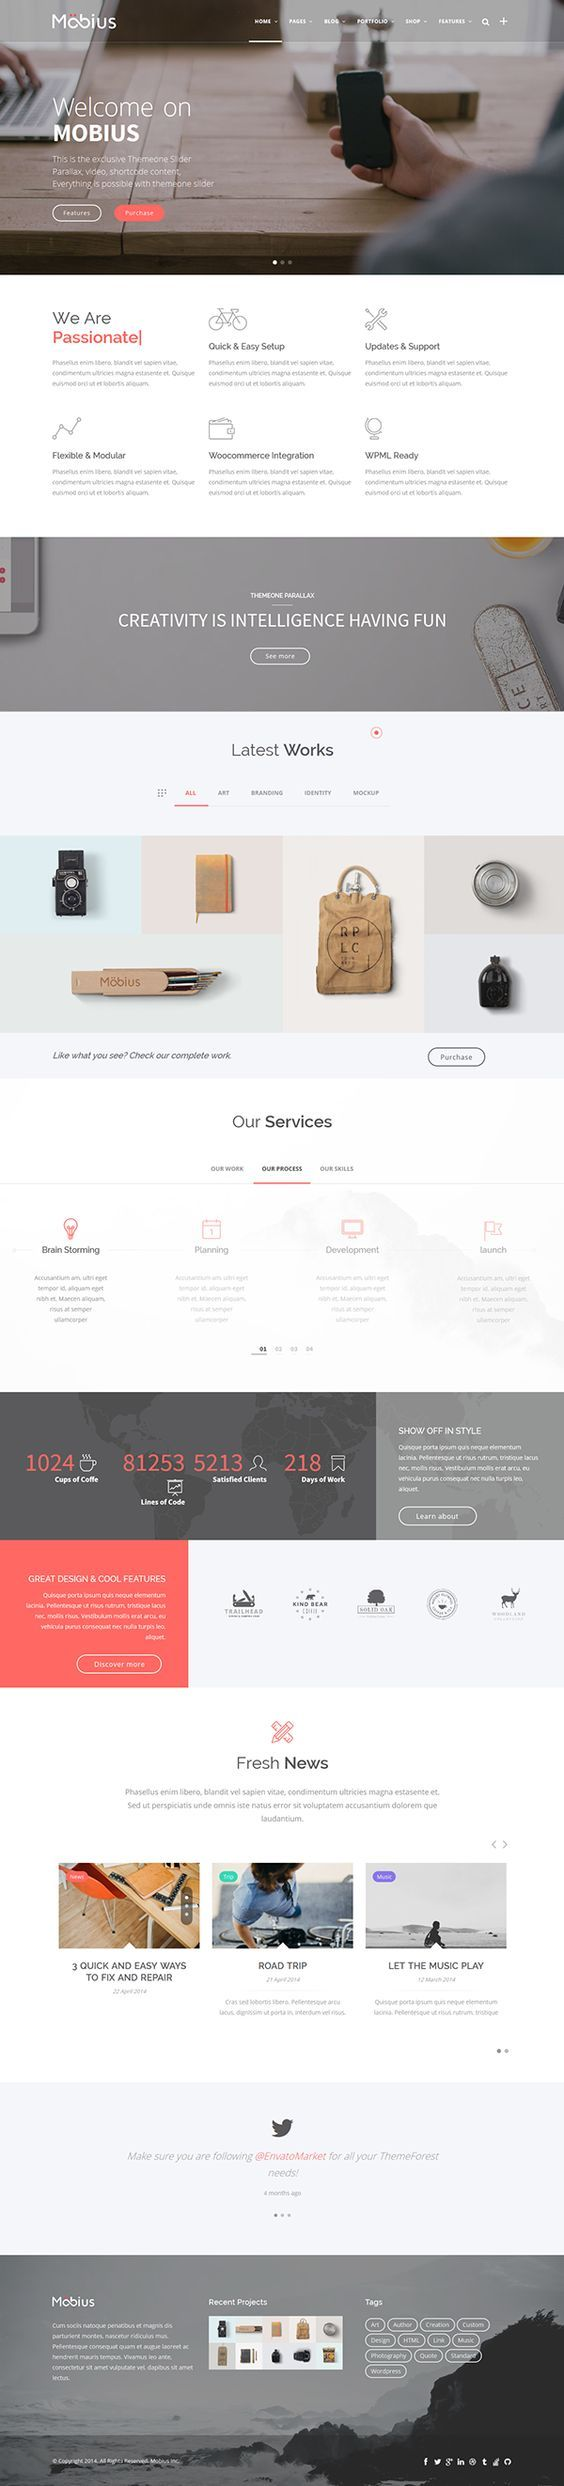 Mobius - Responsive Multi-Purpose WordPress Theme on Web Design Served: